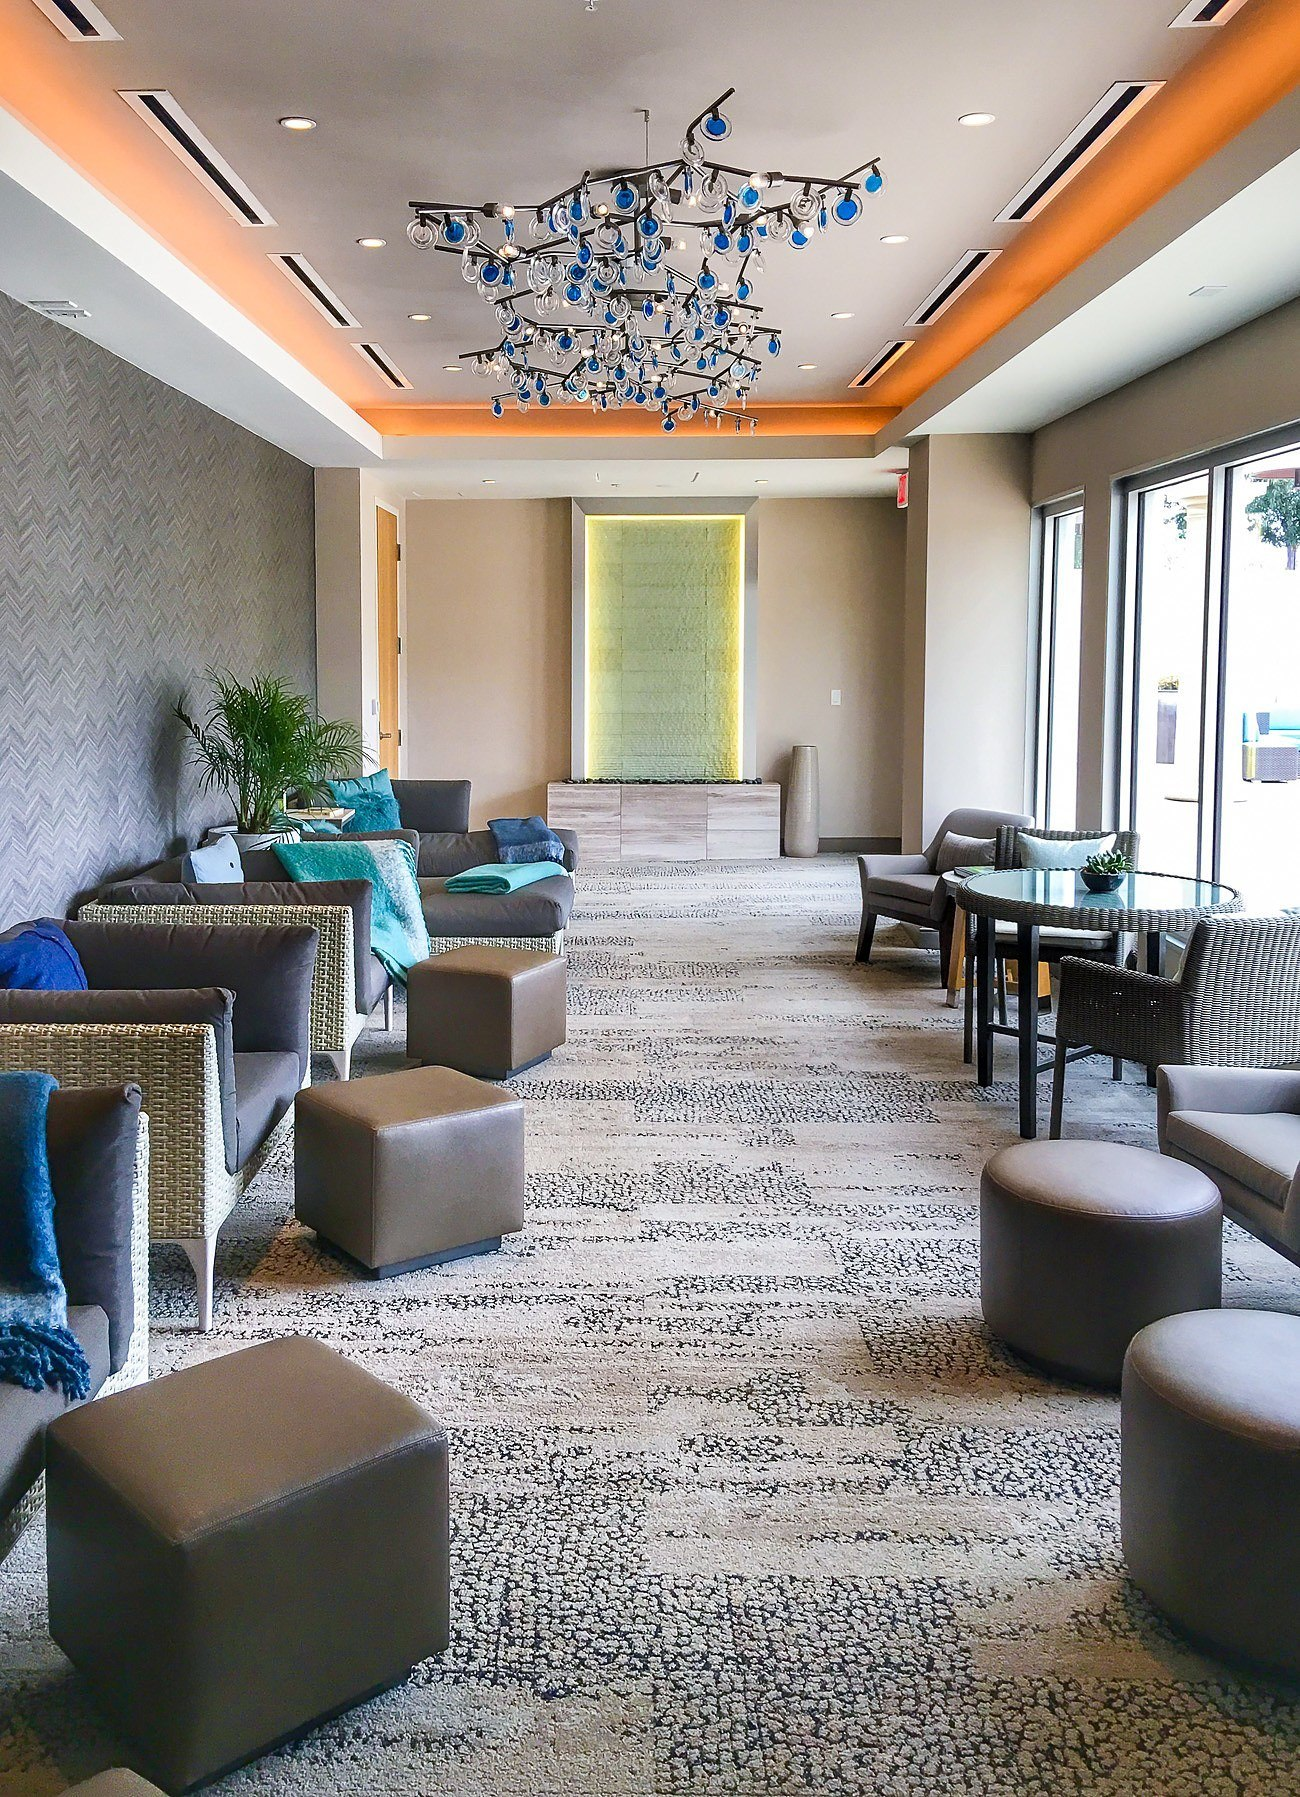 Arrive early to lounge here at The Spa at Coronado Island inside the Marriott.